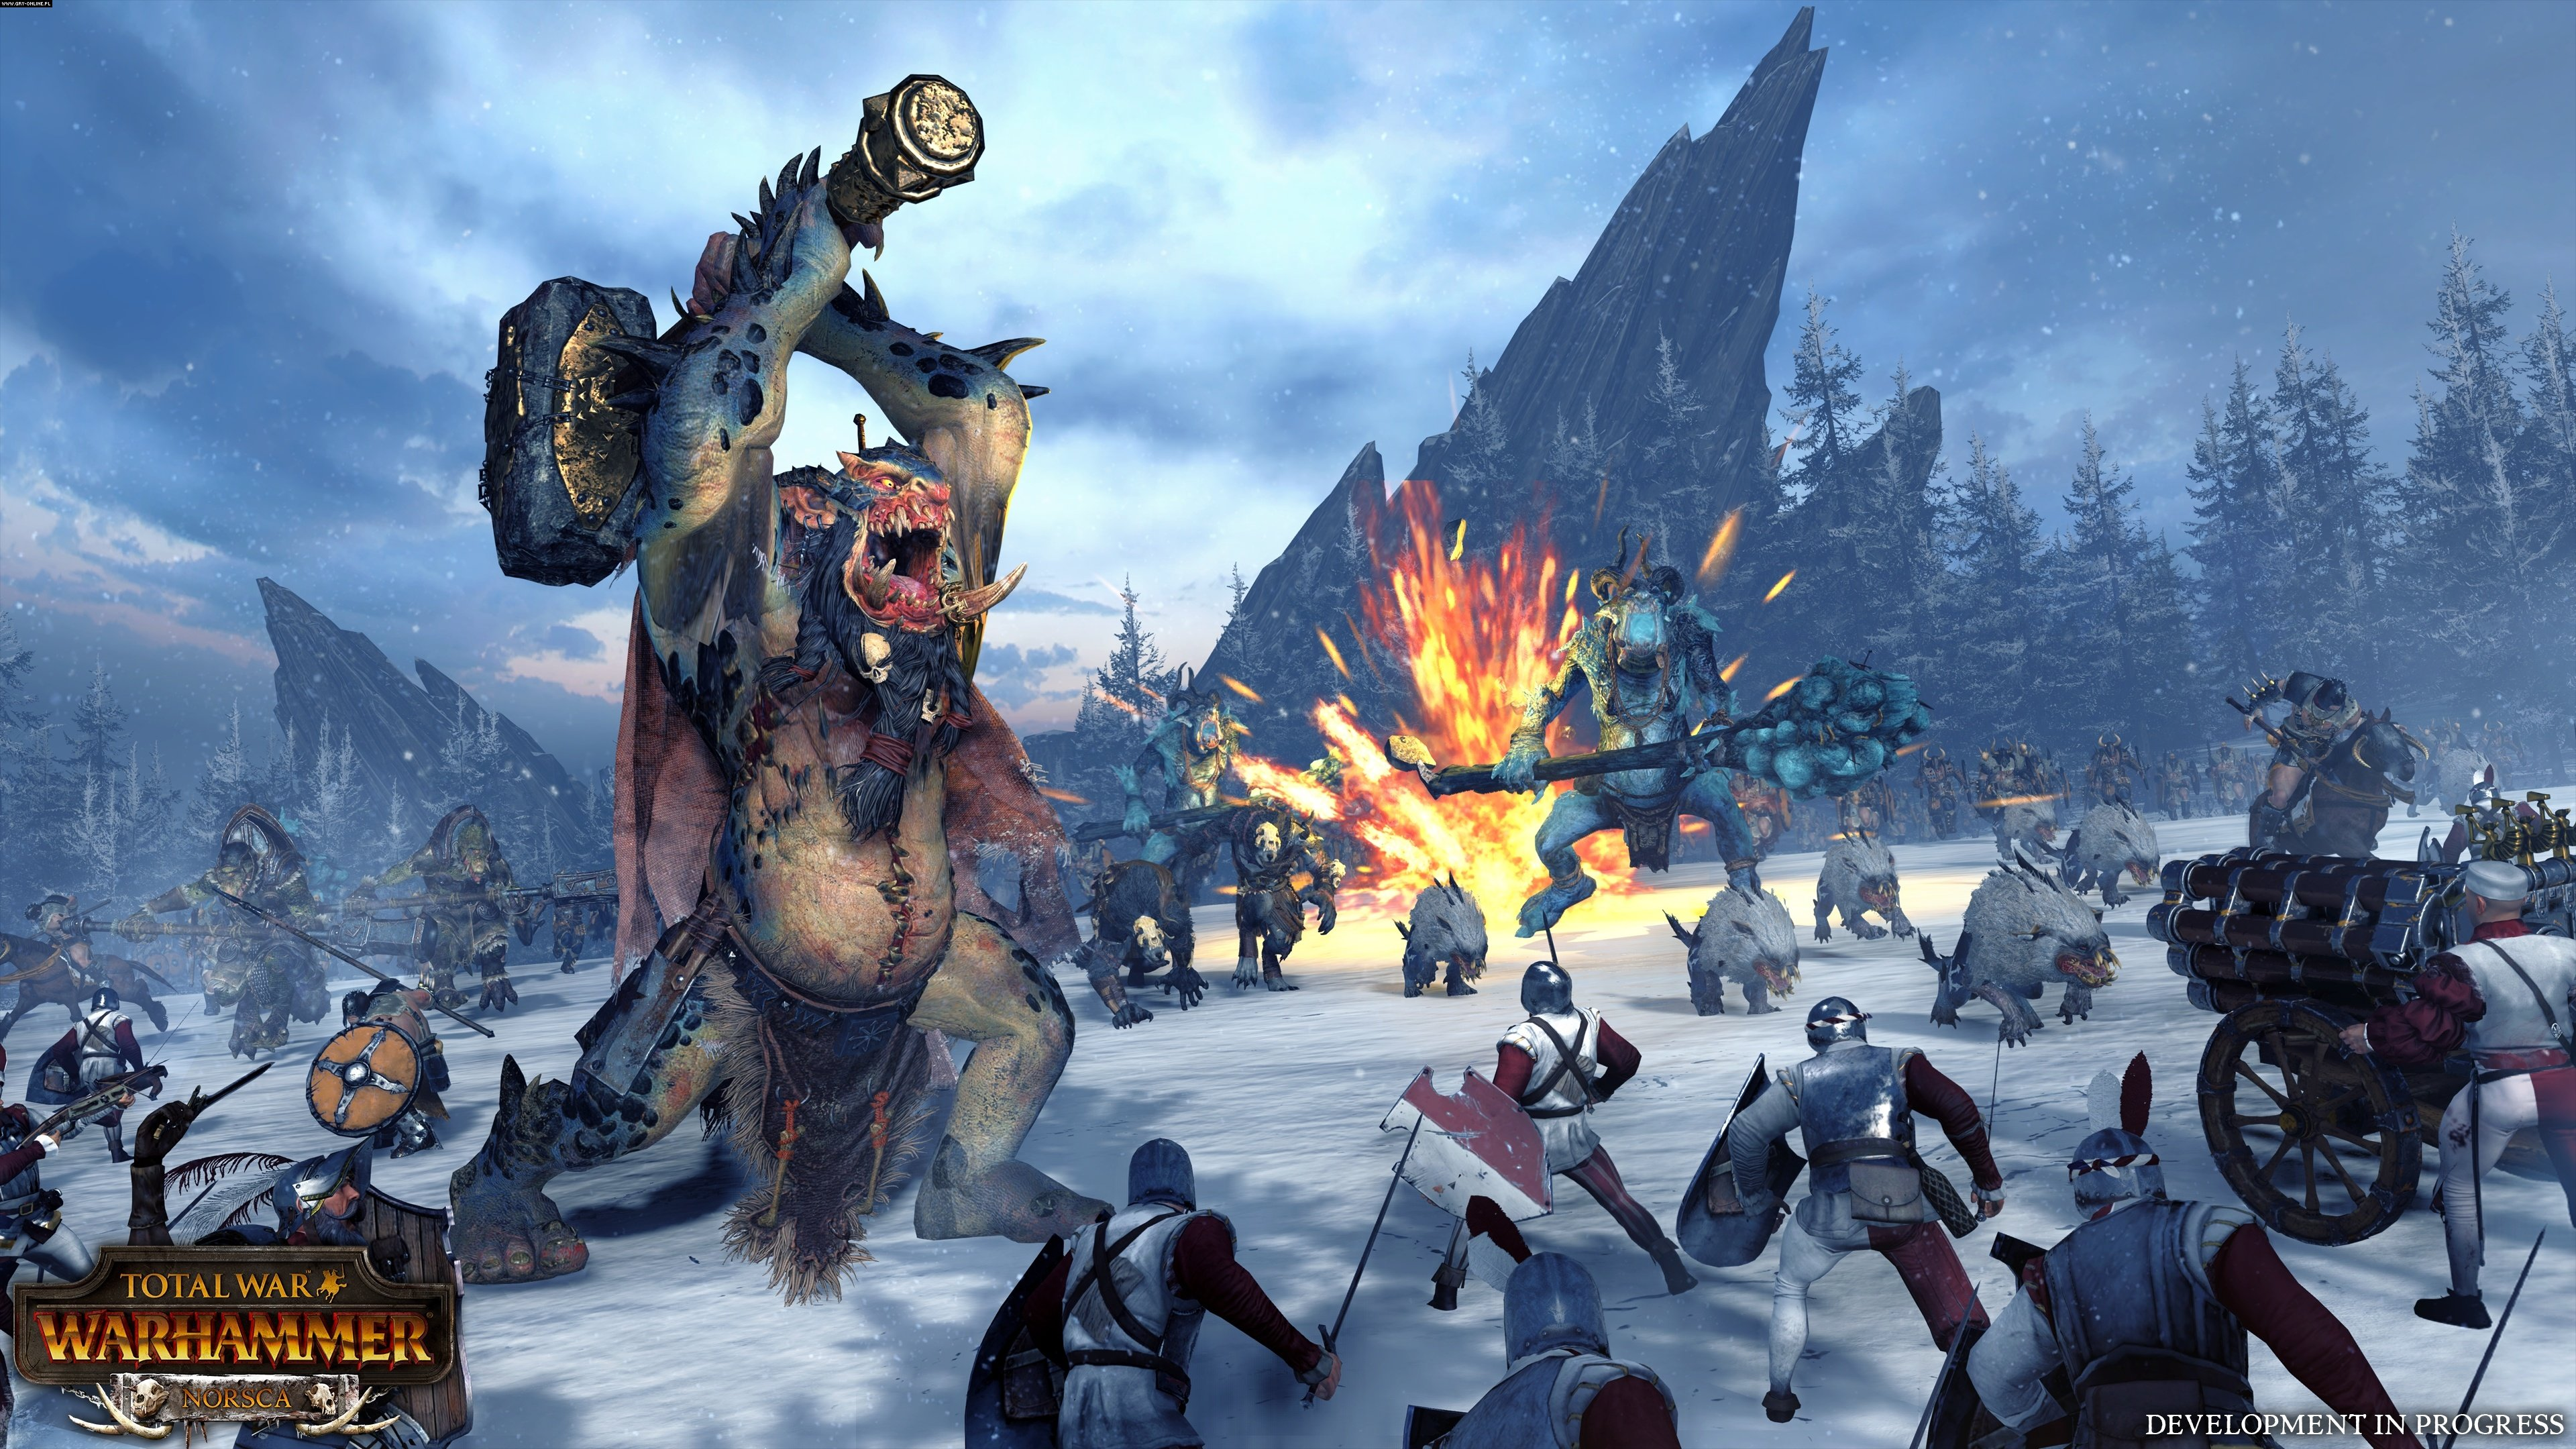 Total War: Warhammer PC Gry Screen 3/106, Creative Assembly, SEGA